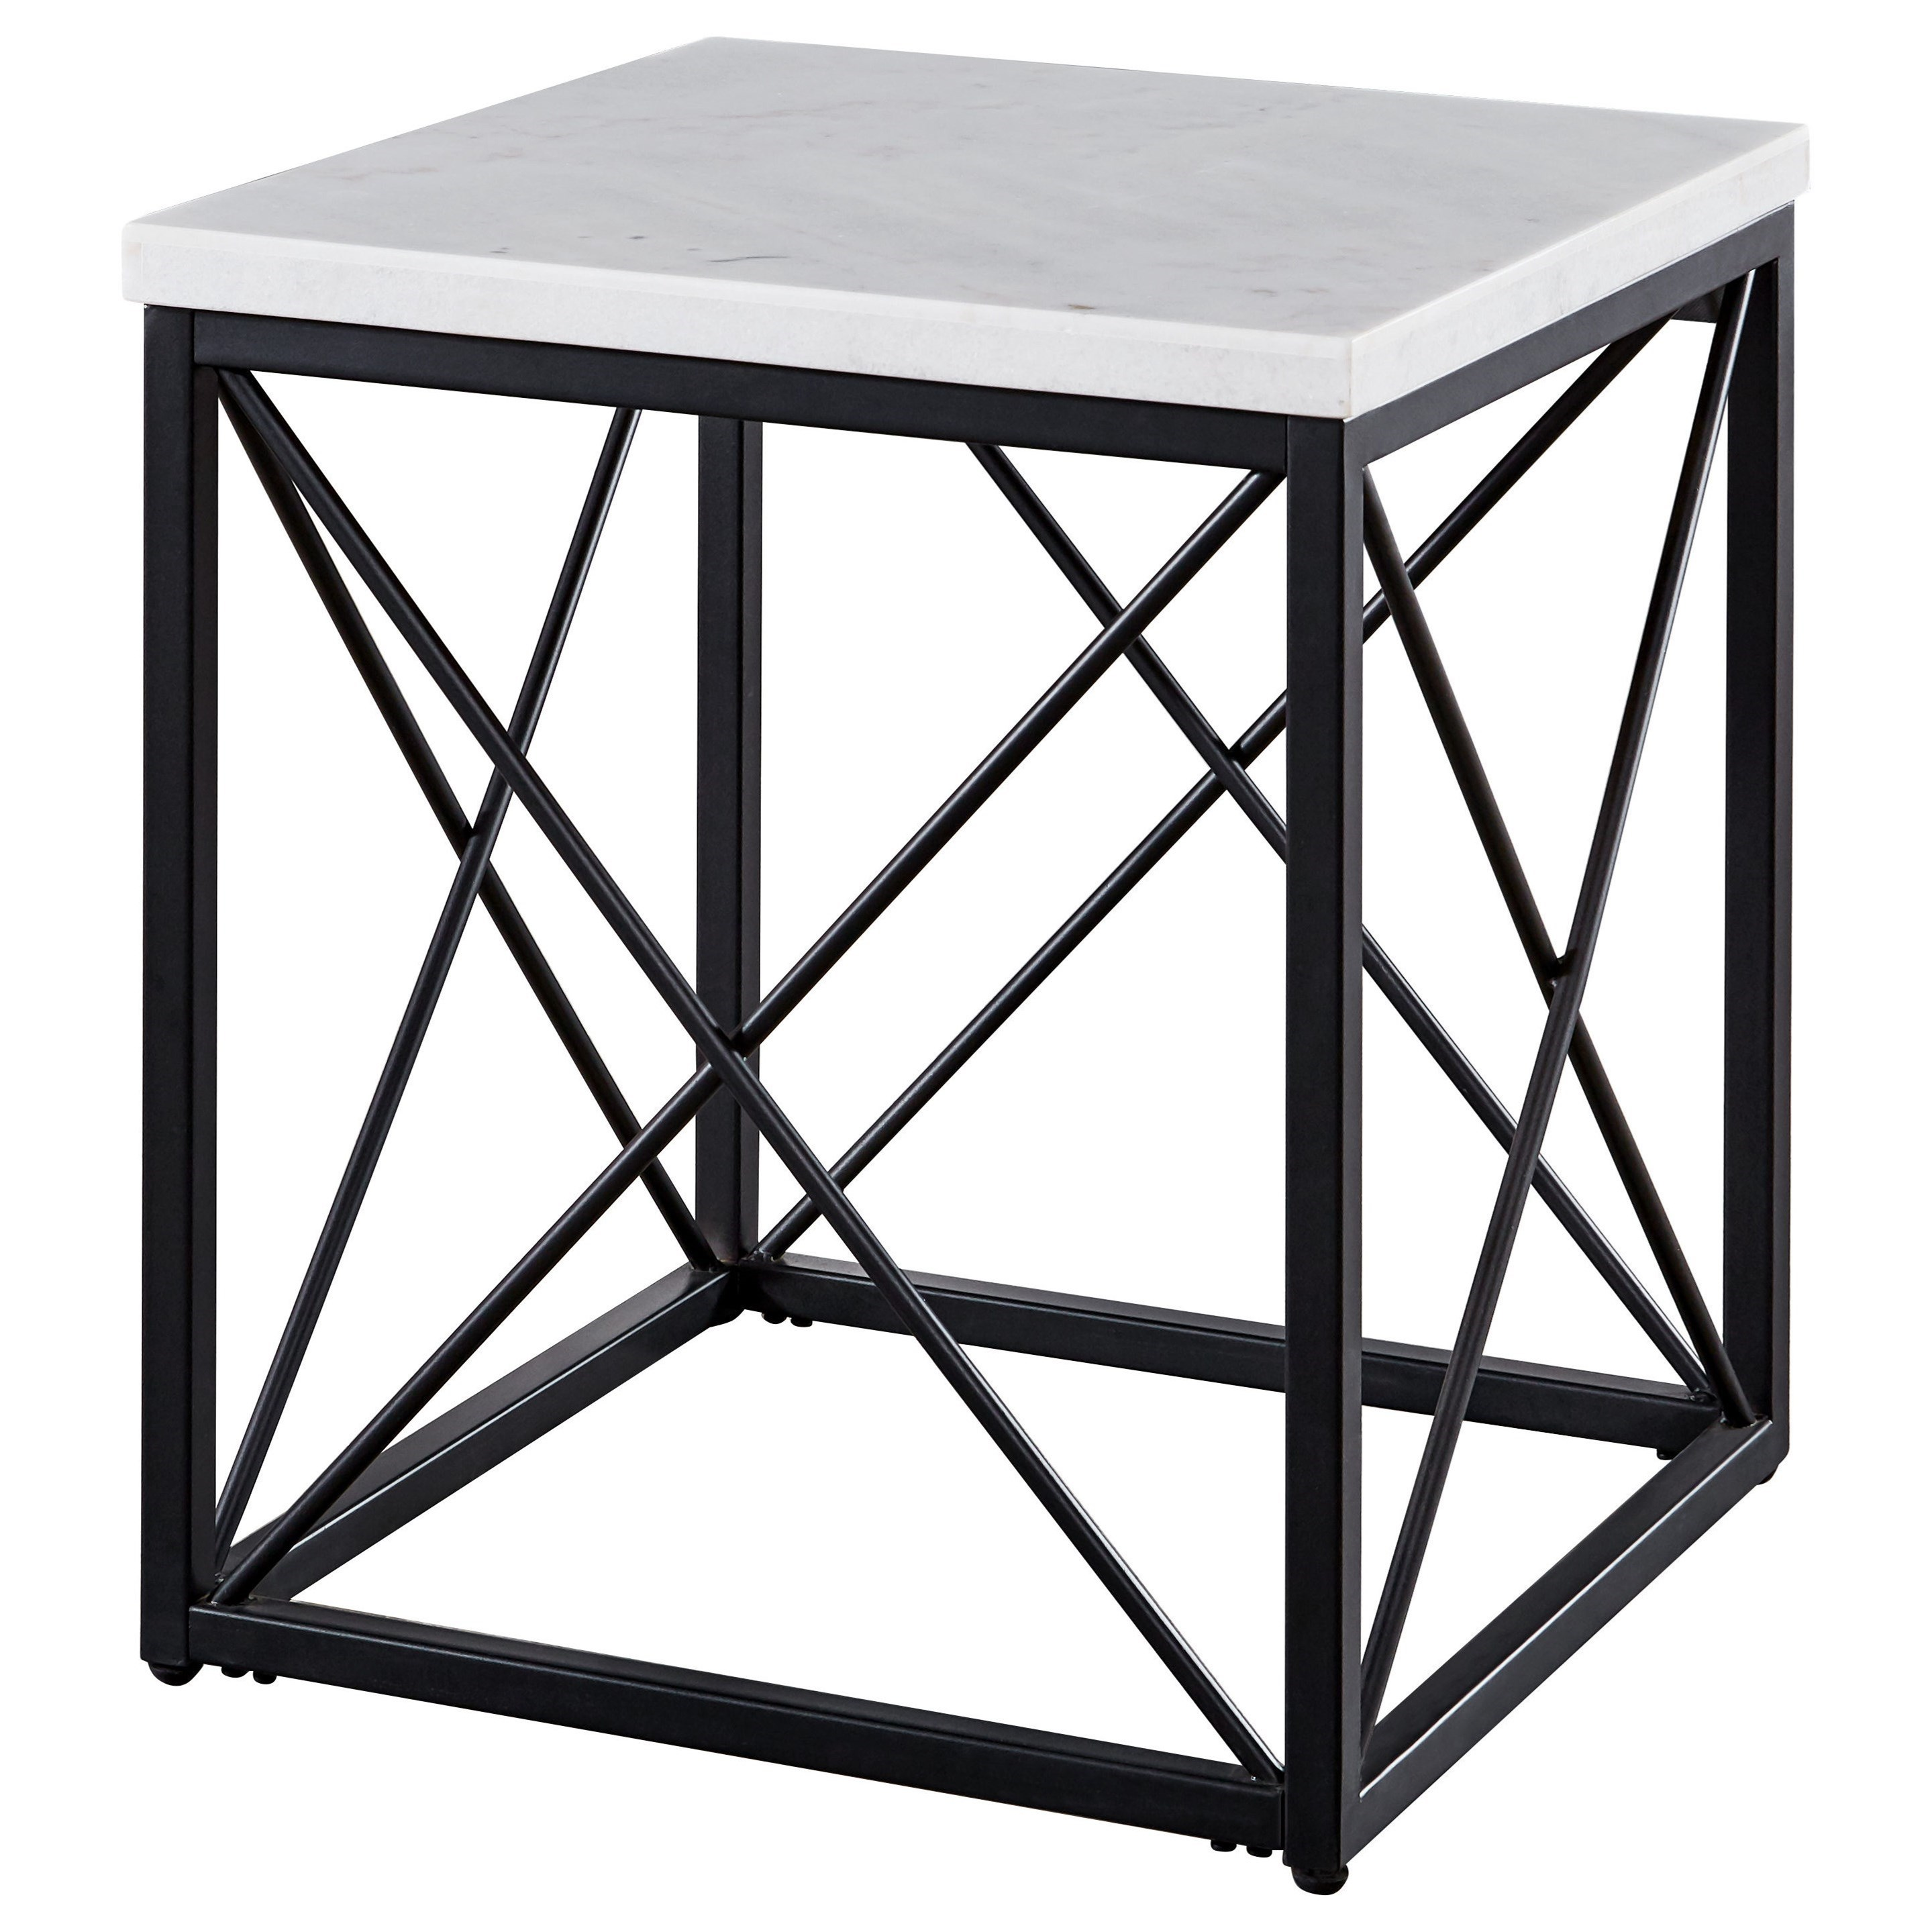 Skyler White Marble Top Square End Table by Steve Silver at Walker's Furniture